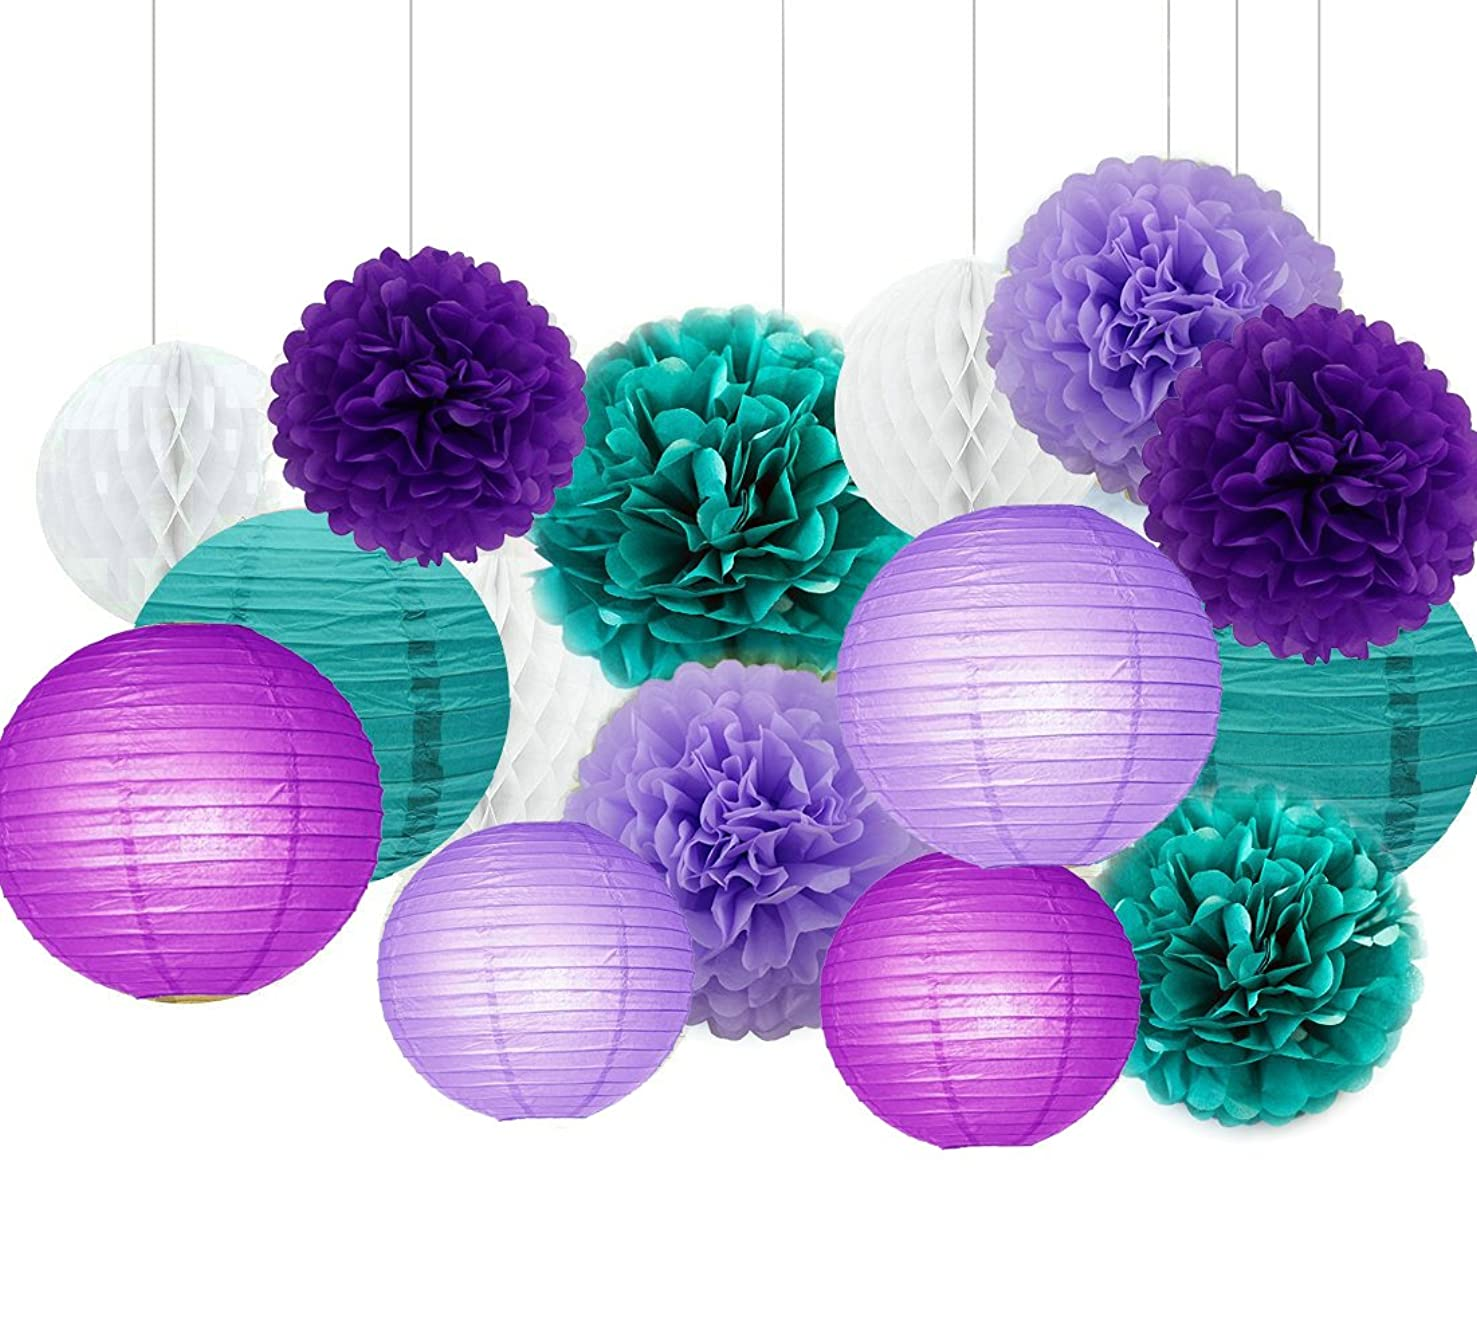 Sogorge Dark purple Lavender and Teal Blue Tissue Paper Pom Poms Flowers Tissue Paper Lanterns Honeycomb Balls Birthday Party Wedding Baby Shower Decorations